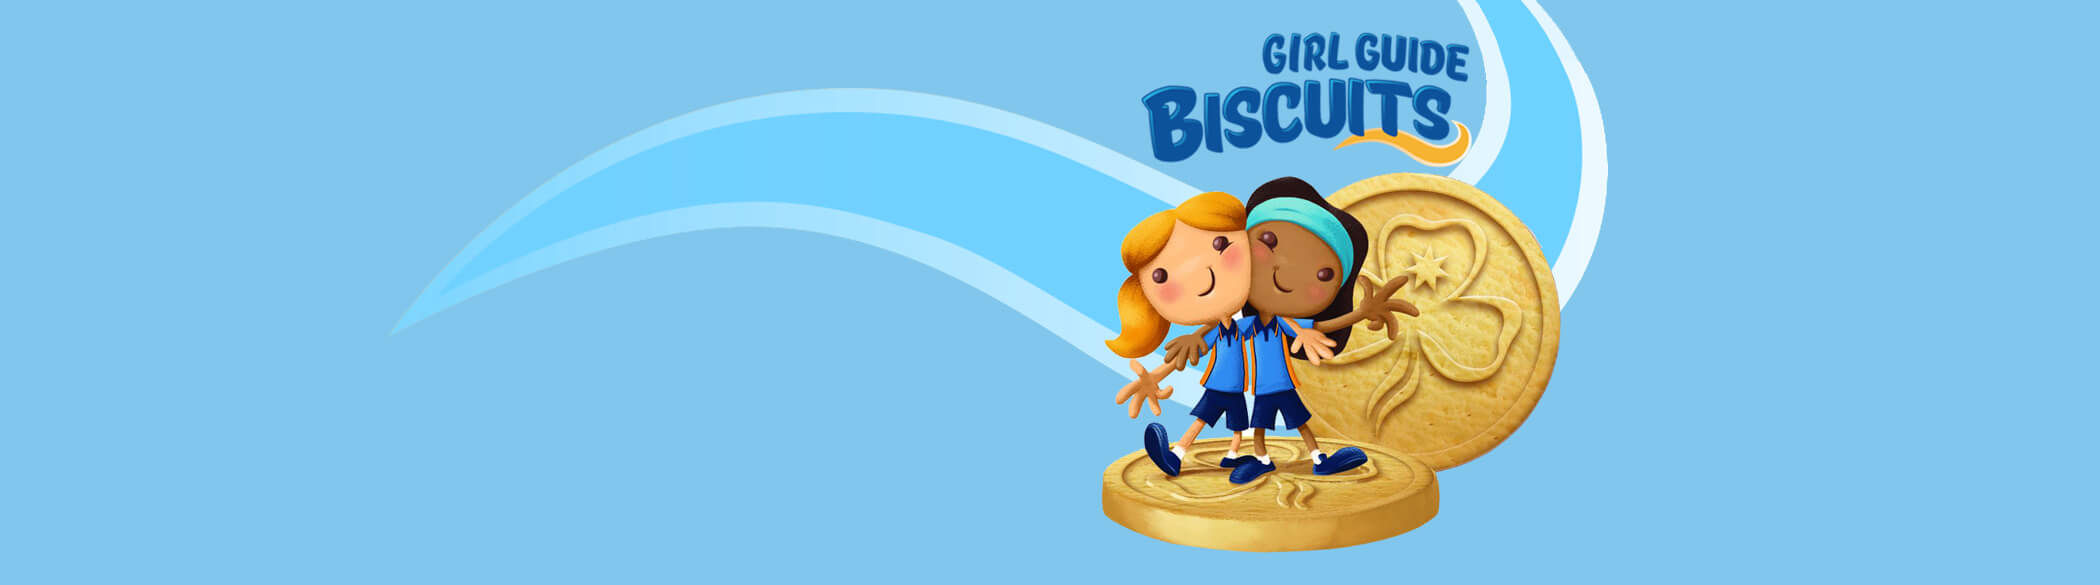 Girl Guides SA Biscuits